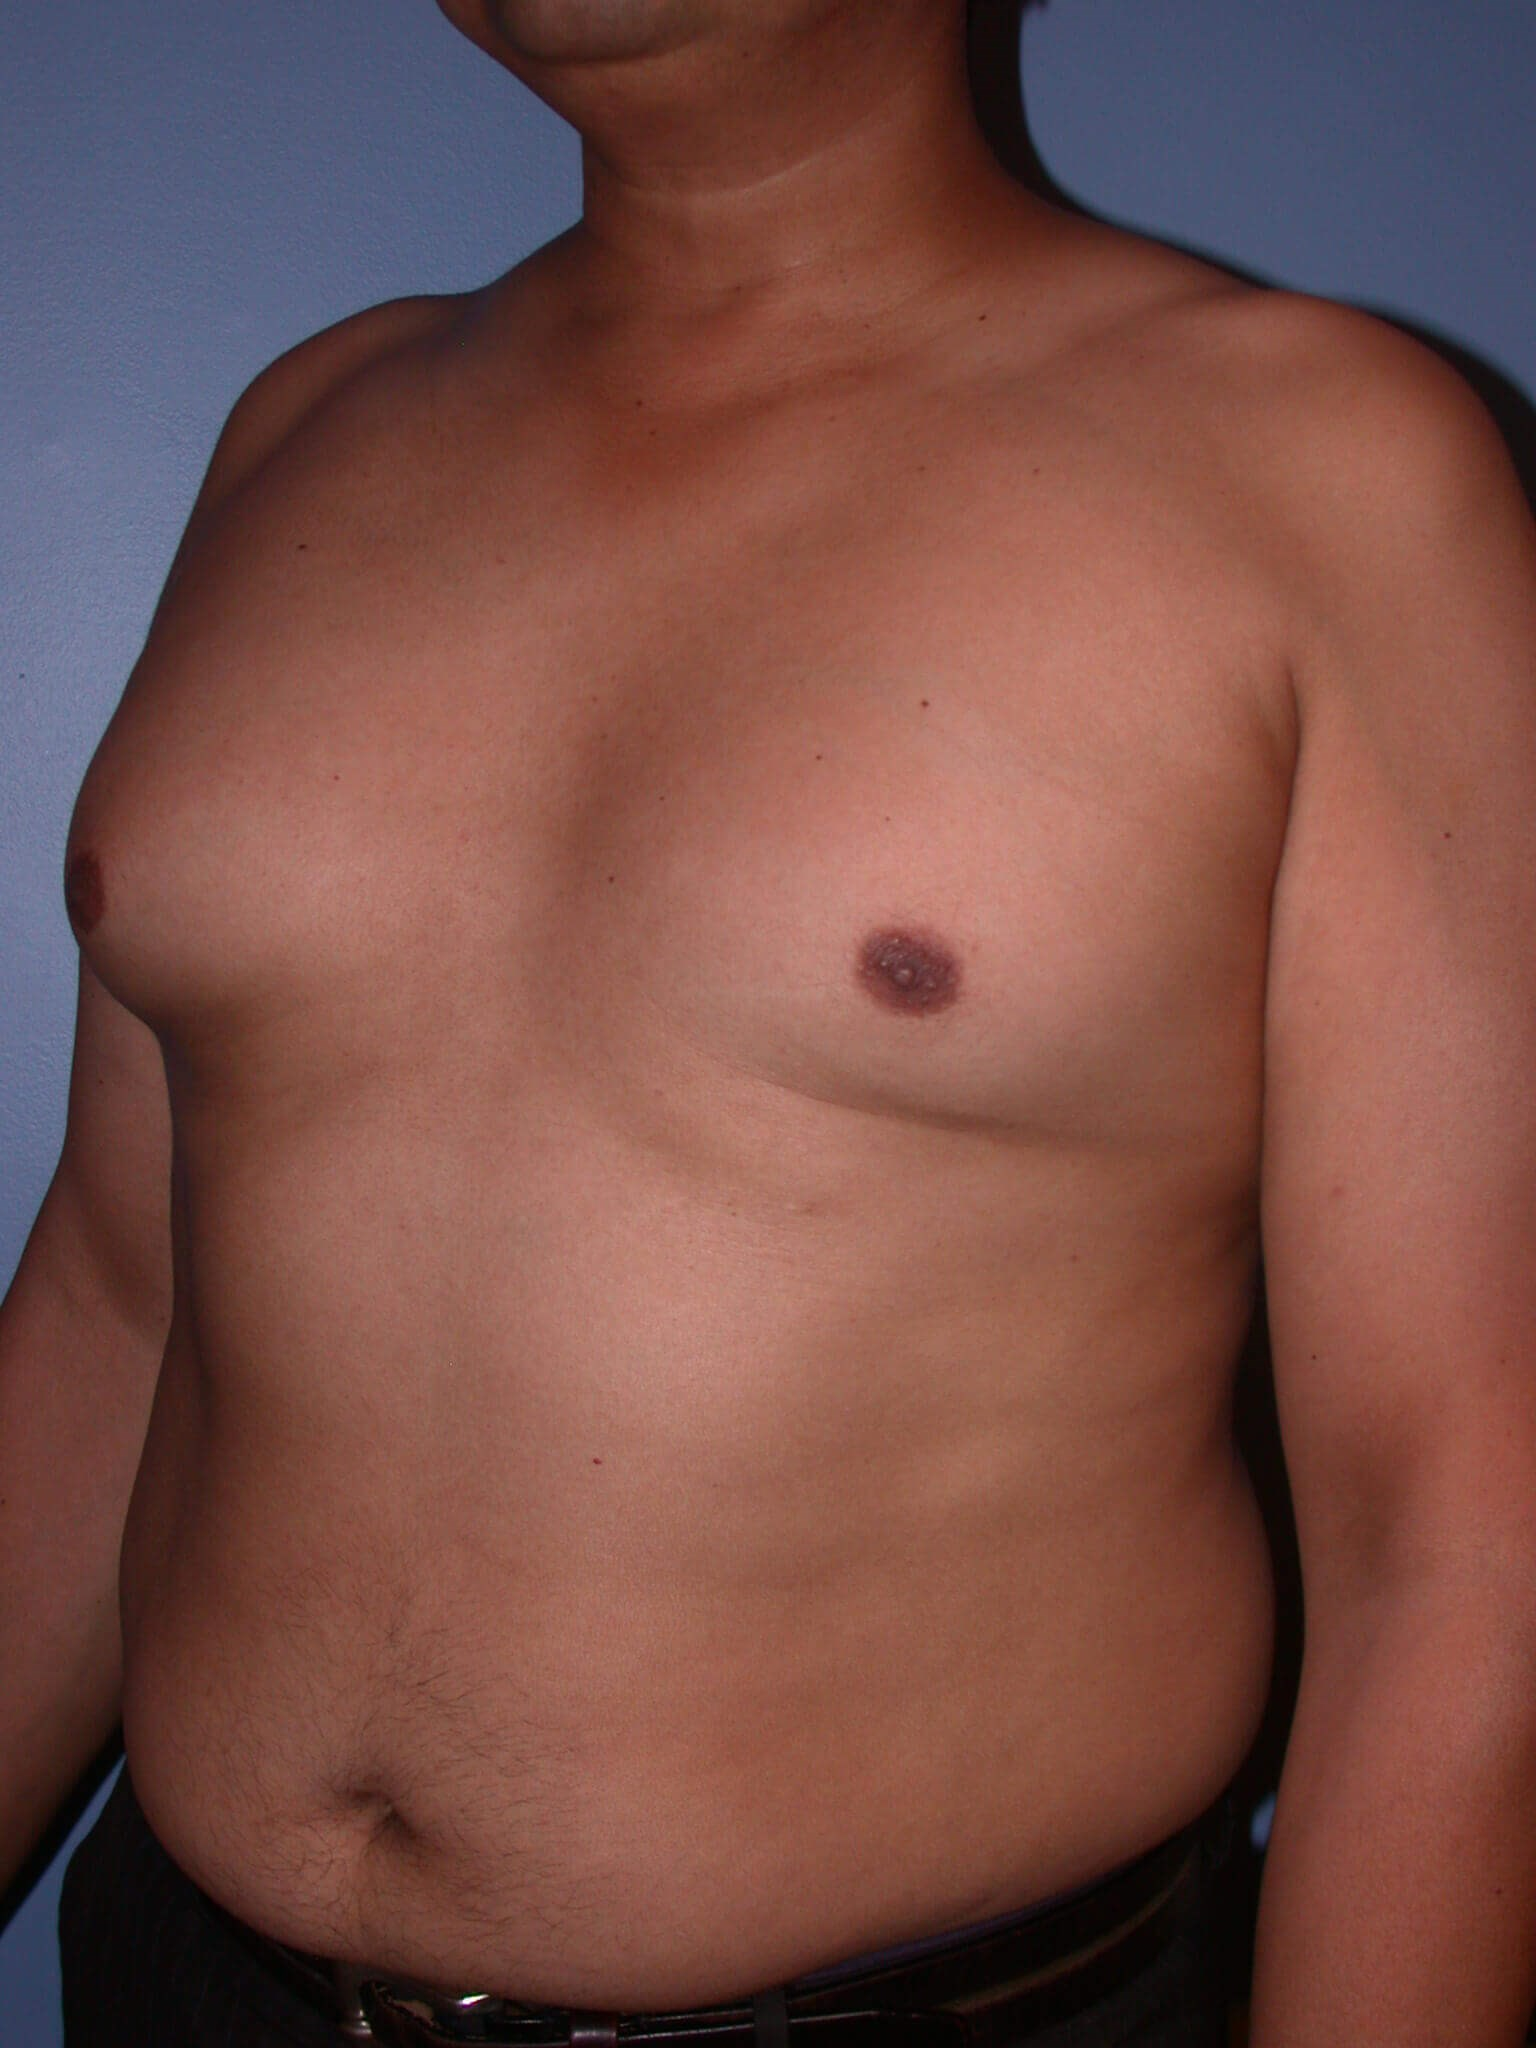 Gynecomastia Side View Before